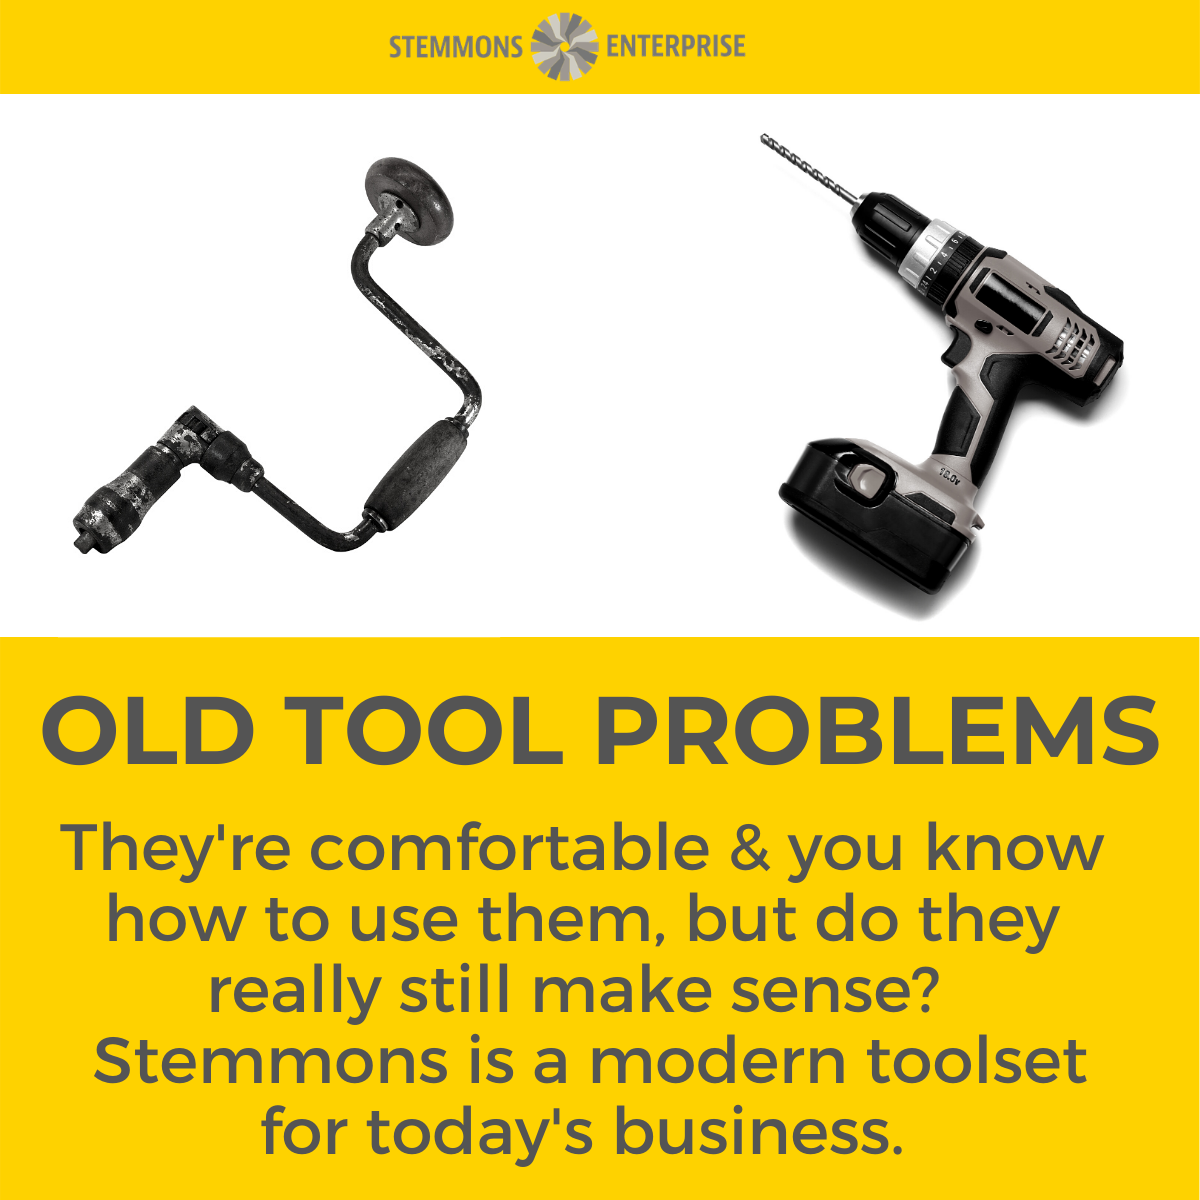 Old Tool Problems